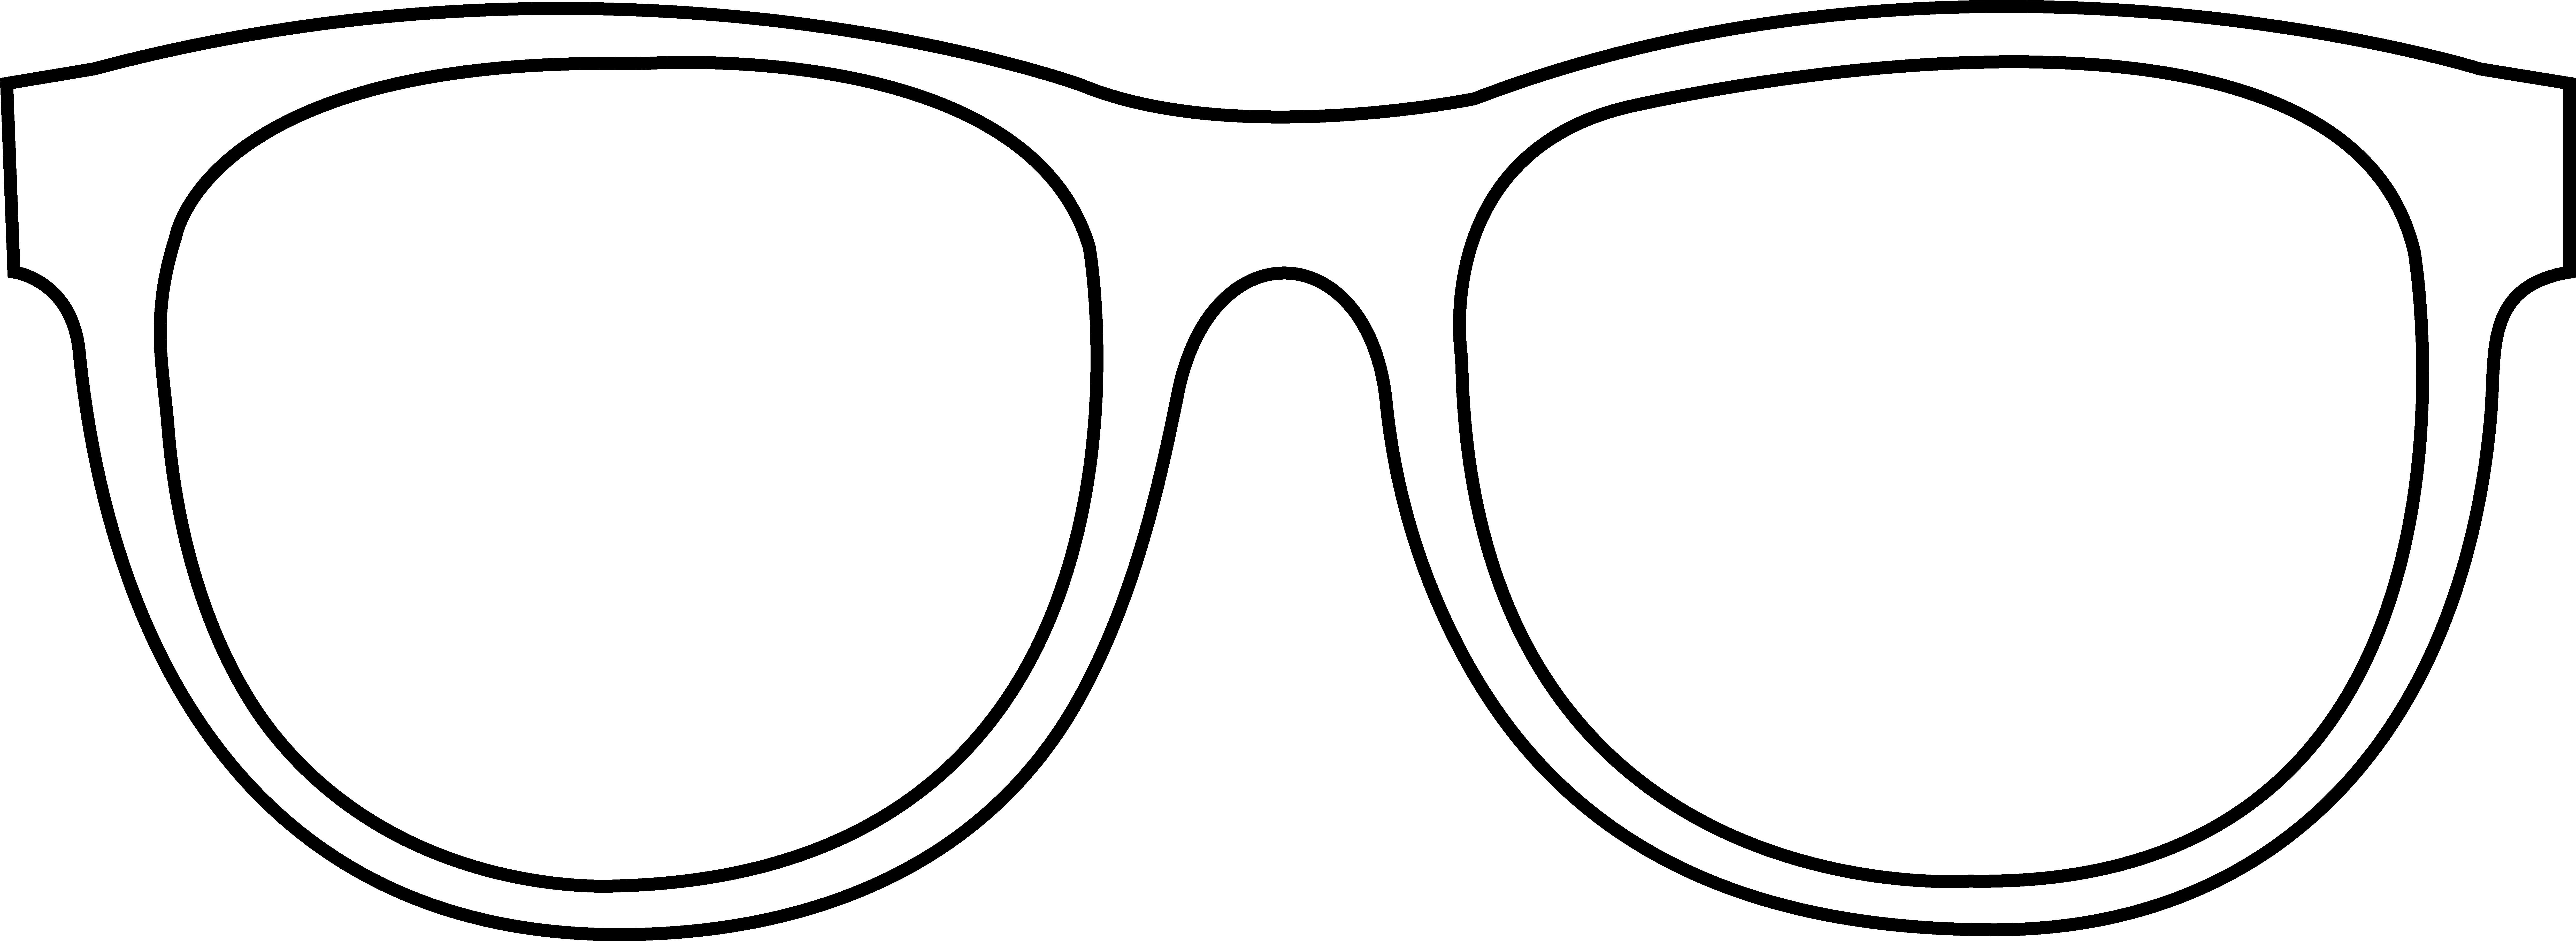 Glasses black and white clipart svg free library Sunglasses Clipart Black And White | Free download best Sunglasses ... svg free library